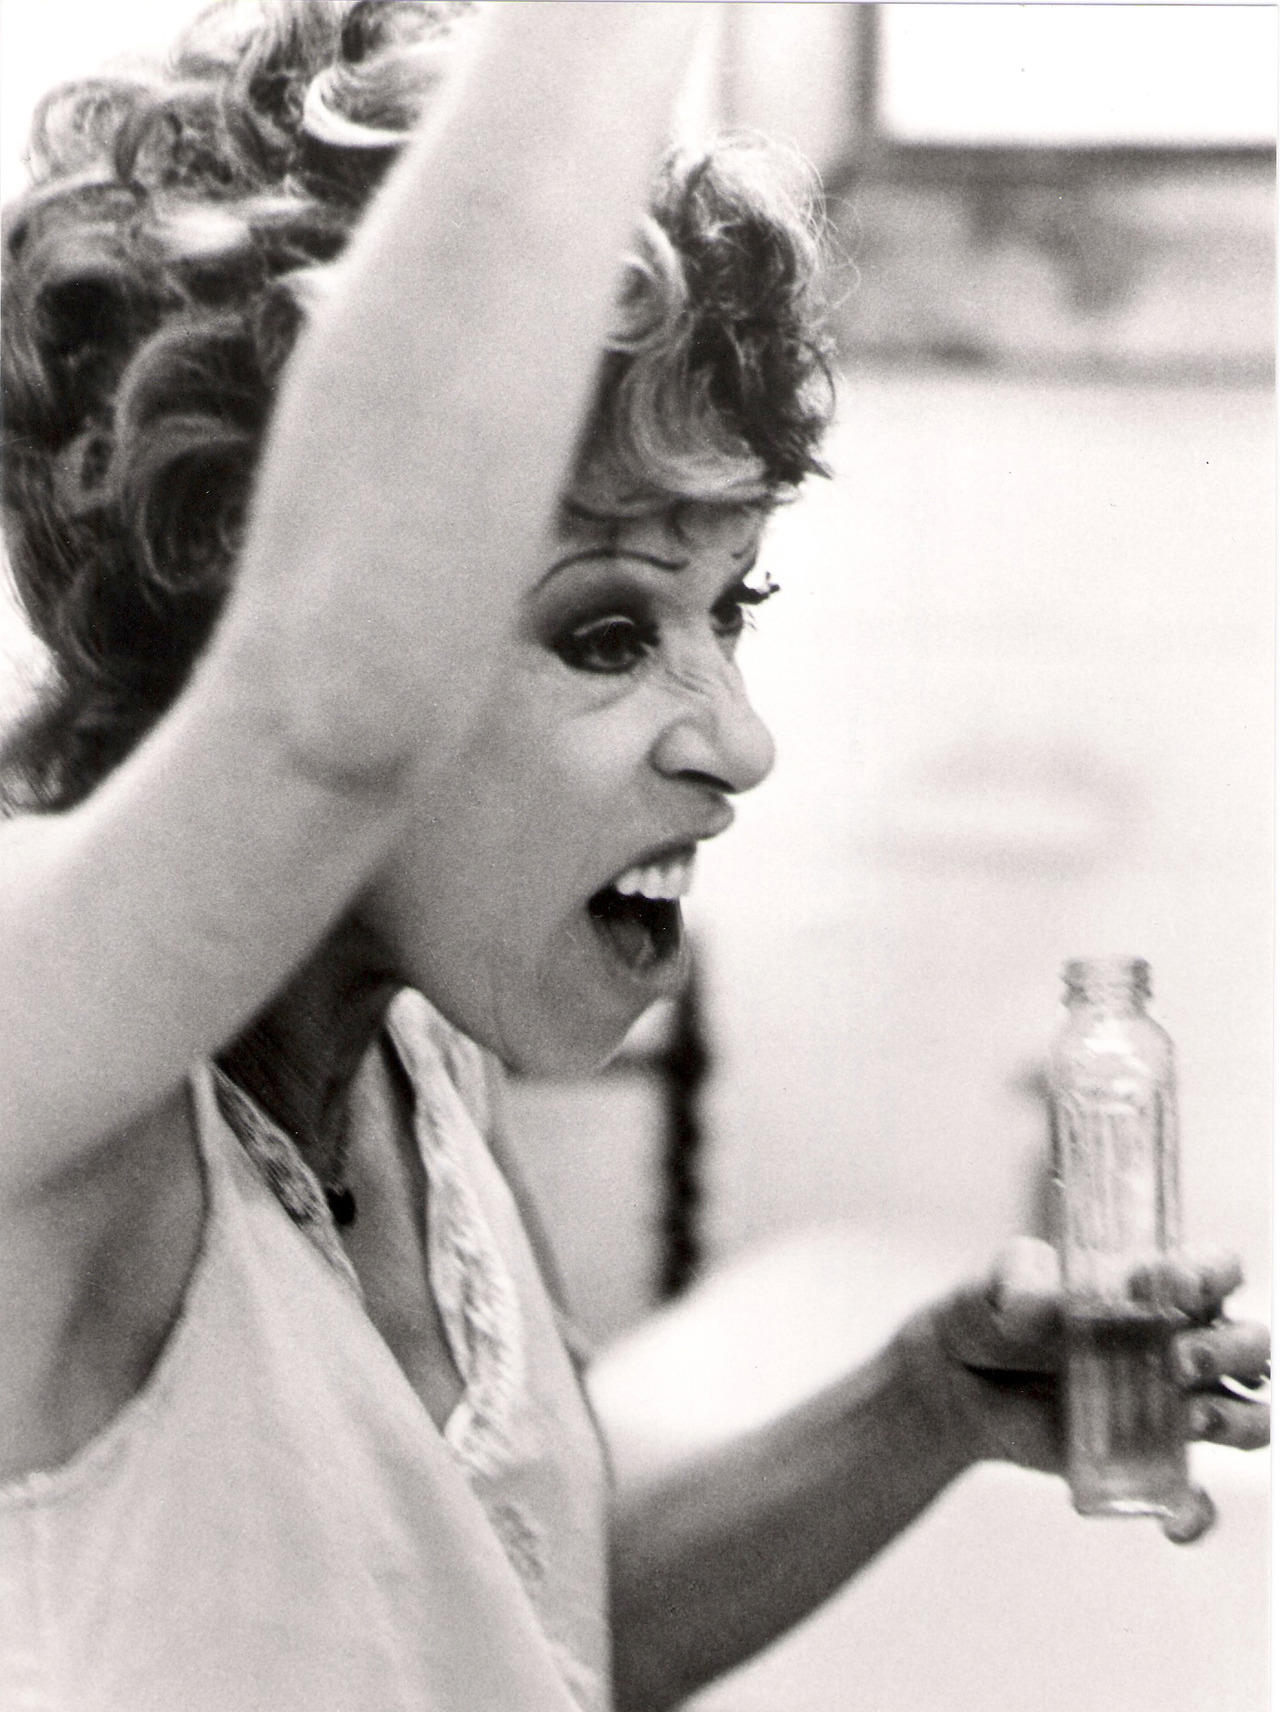 Miss Hannigan is my spirit animal.